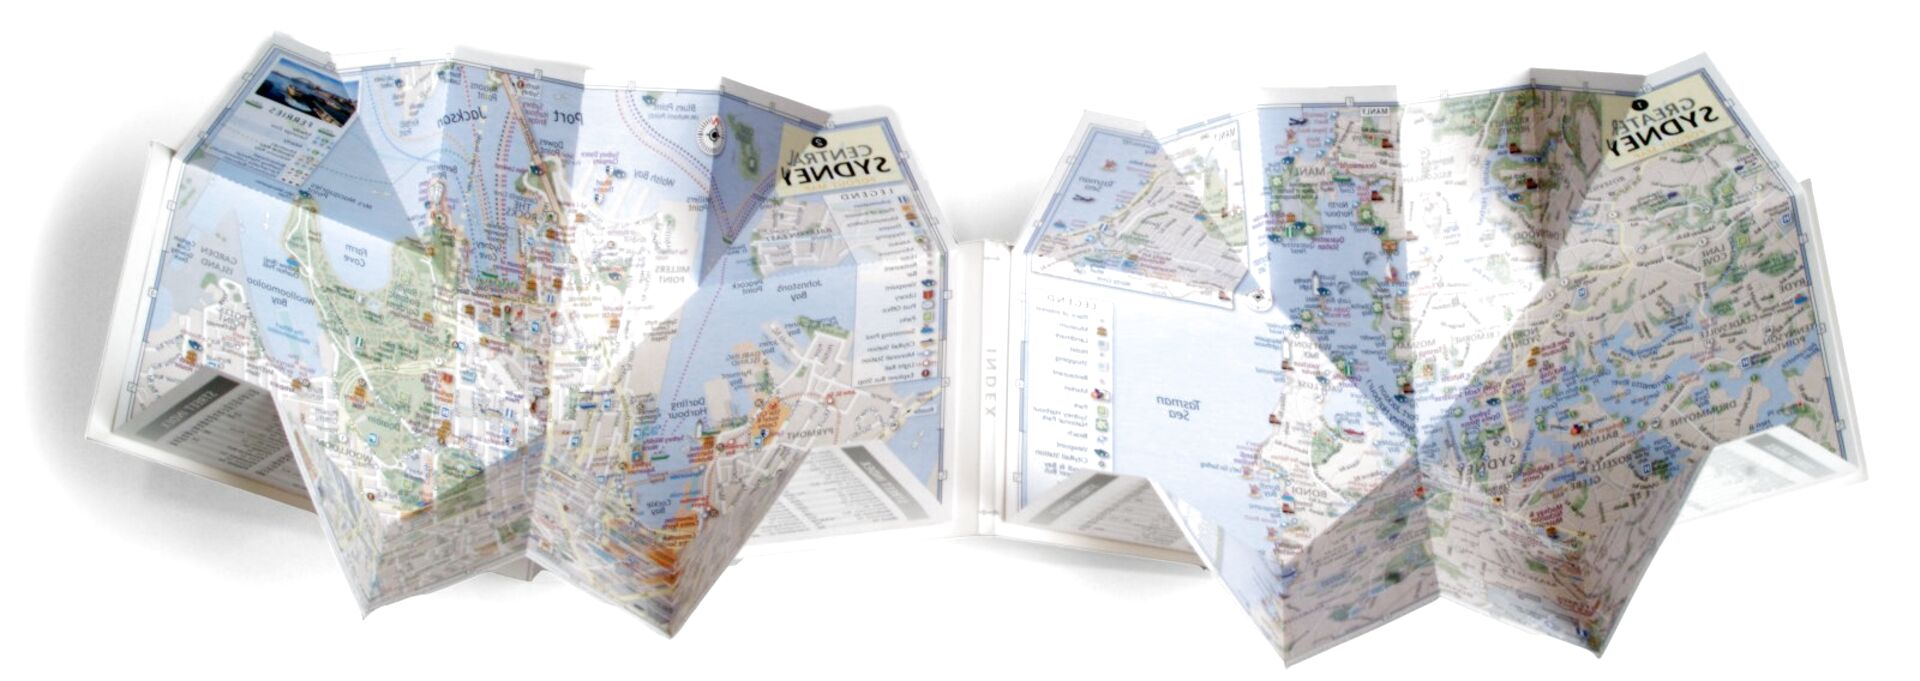 popout maps for sale